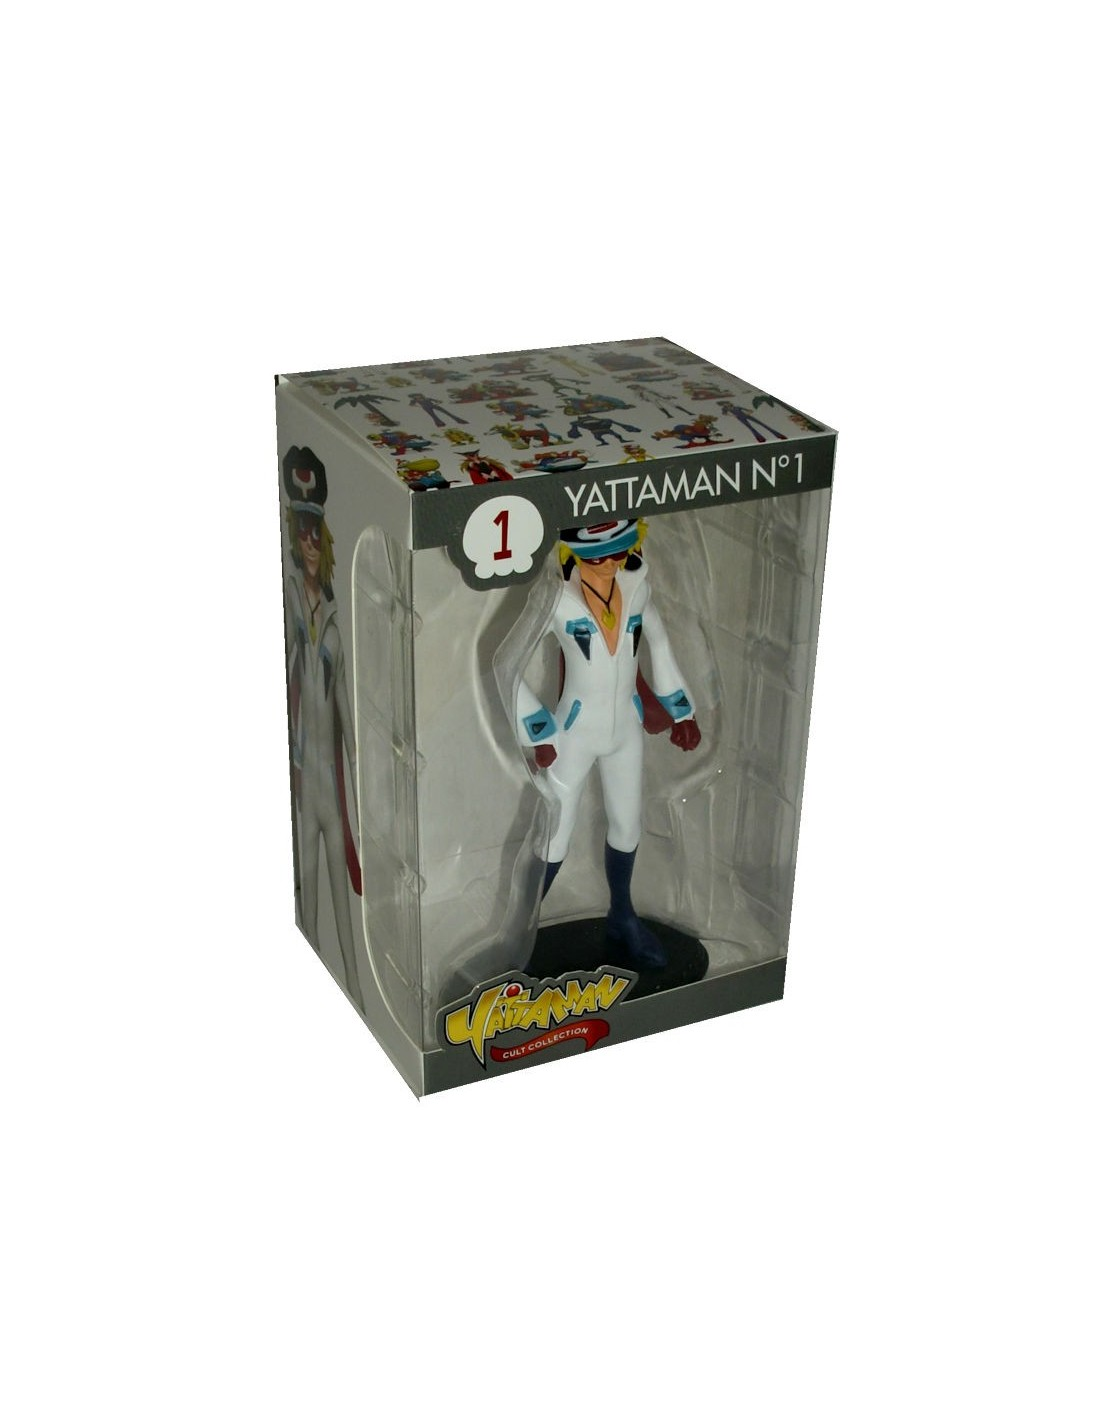 Yamato e corriere yattaman cult collection 01 yattaman mini figure